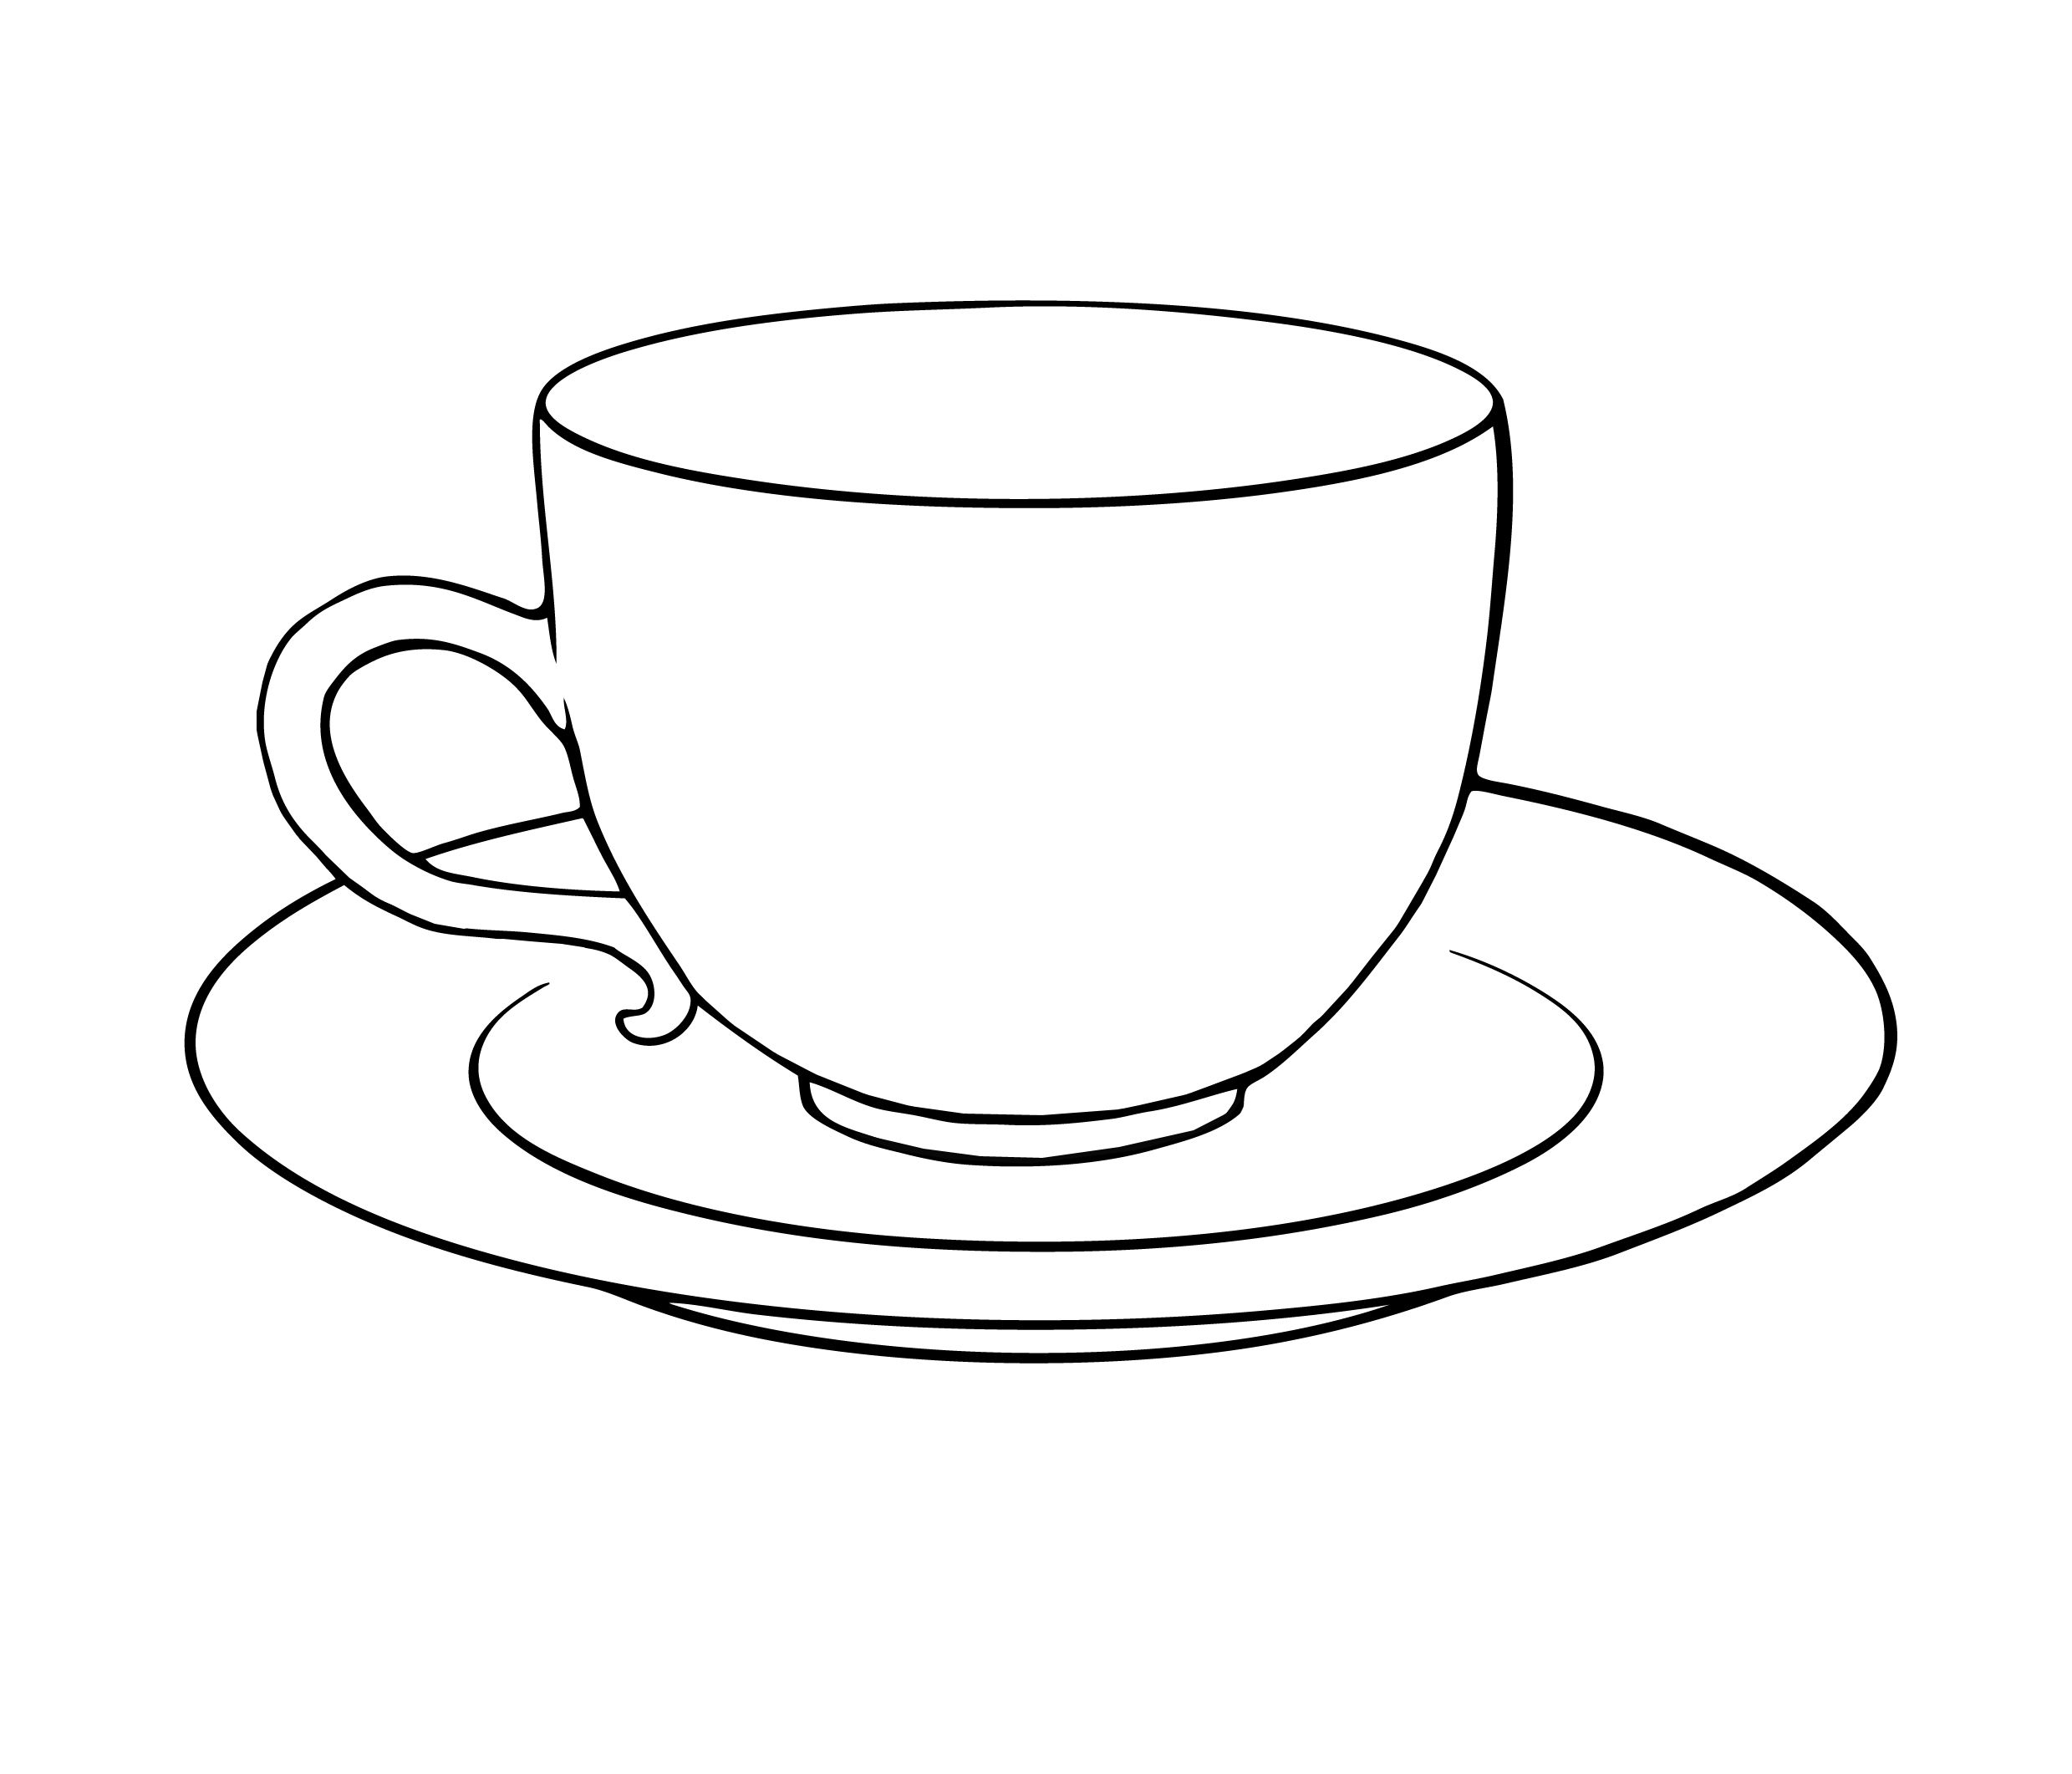 Tea Cup Saucer Colouring Pages